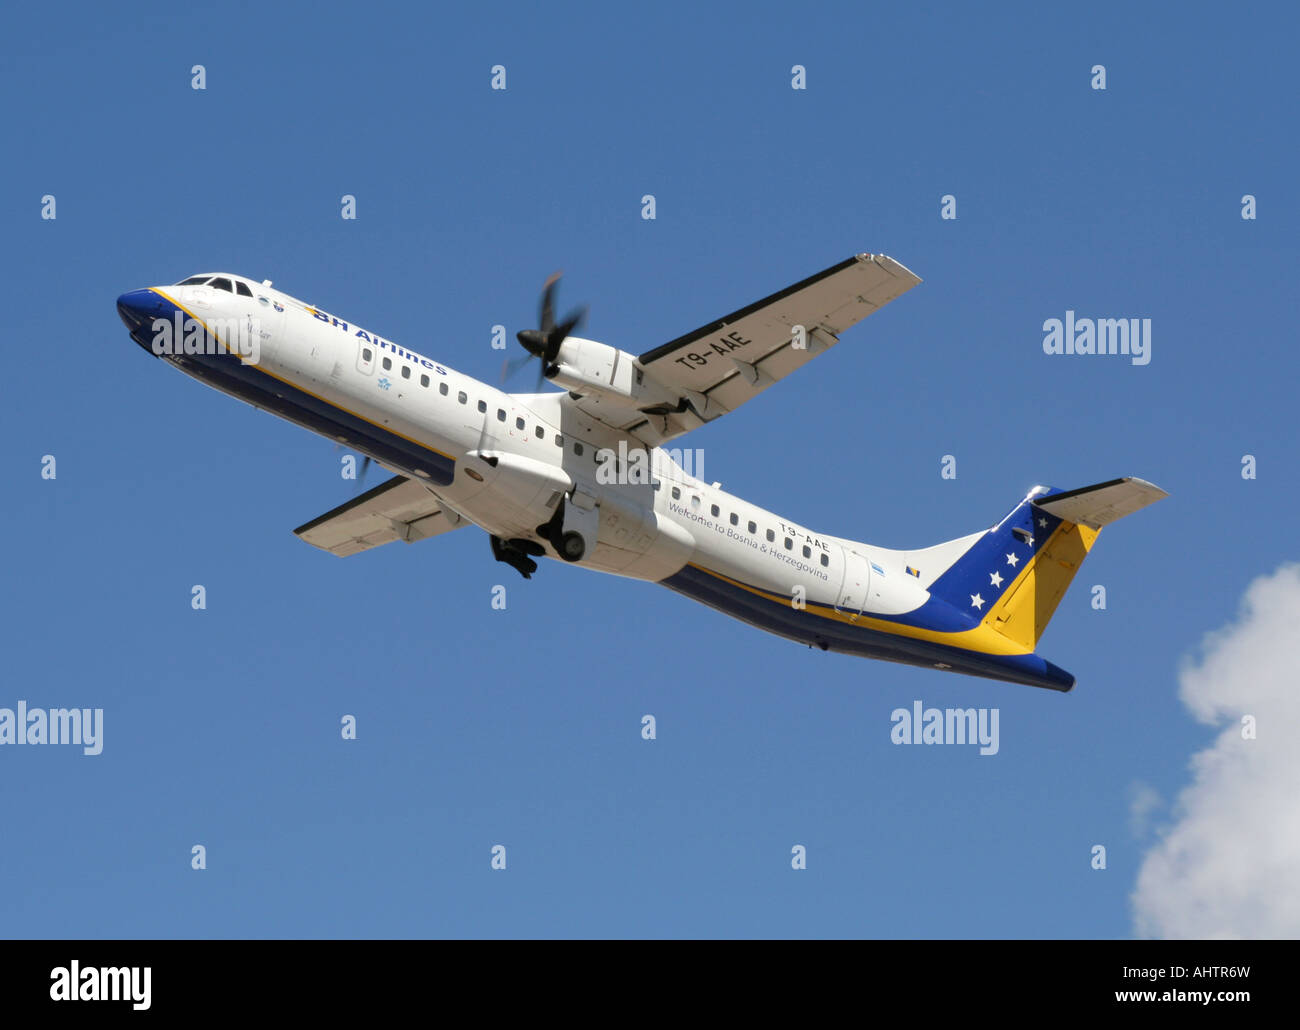 ATR 72-212 short haul turboprop airliner operated by BH Airlines of Boznia-Herzegovina in flight after takeoff - Stock Image